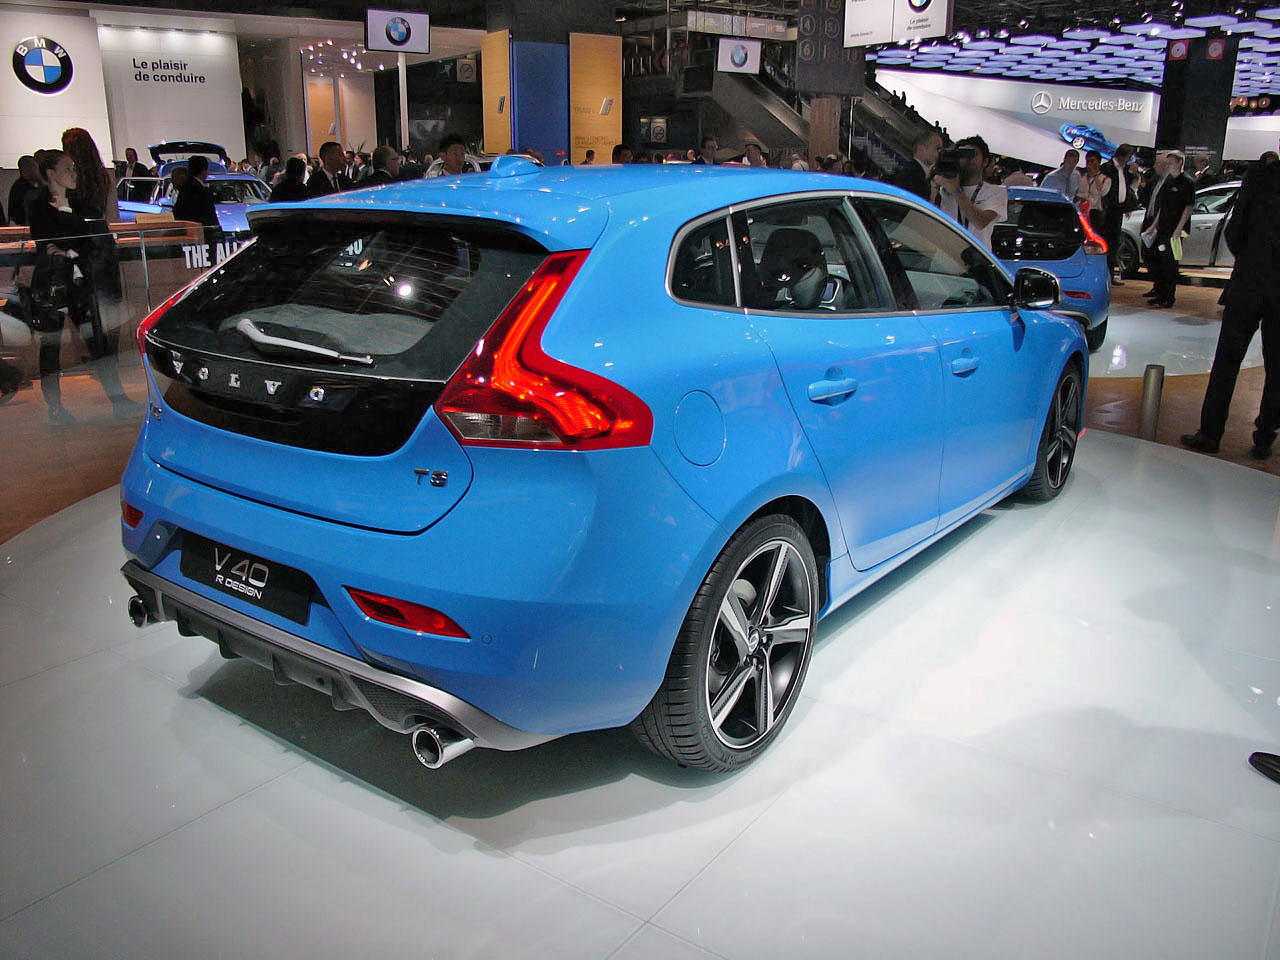 2013 volvo v40 r design leaves us feeling blue in paris. Black Bedroom Furniture Sets. Home Design Ideas